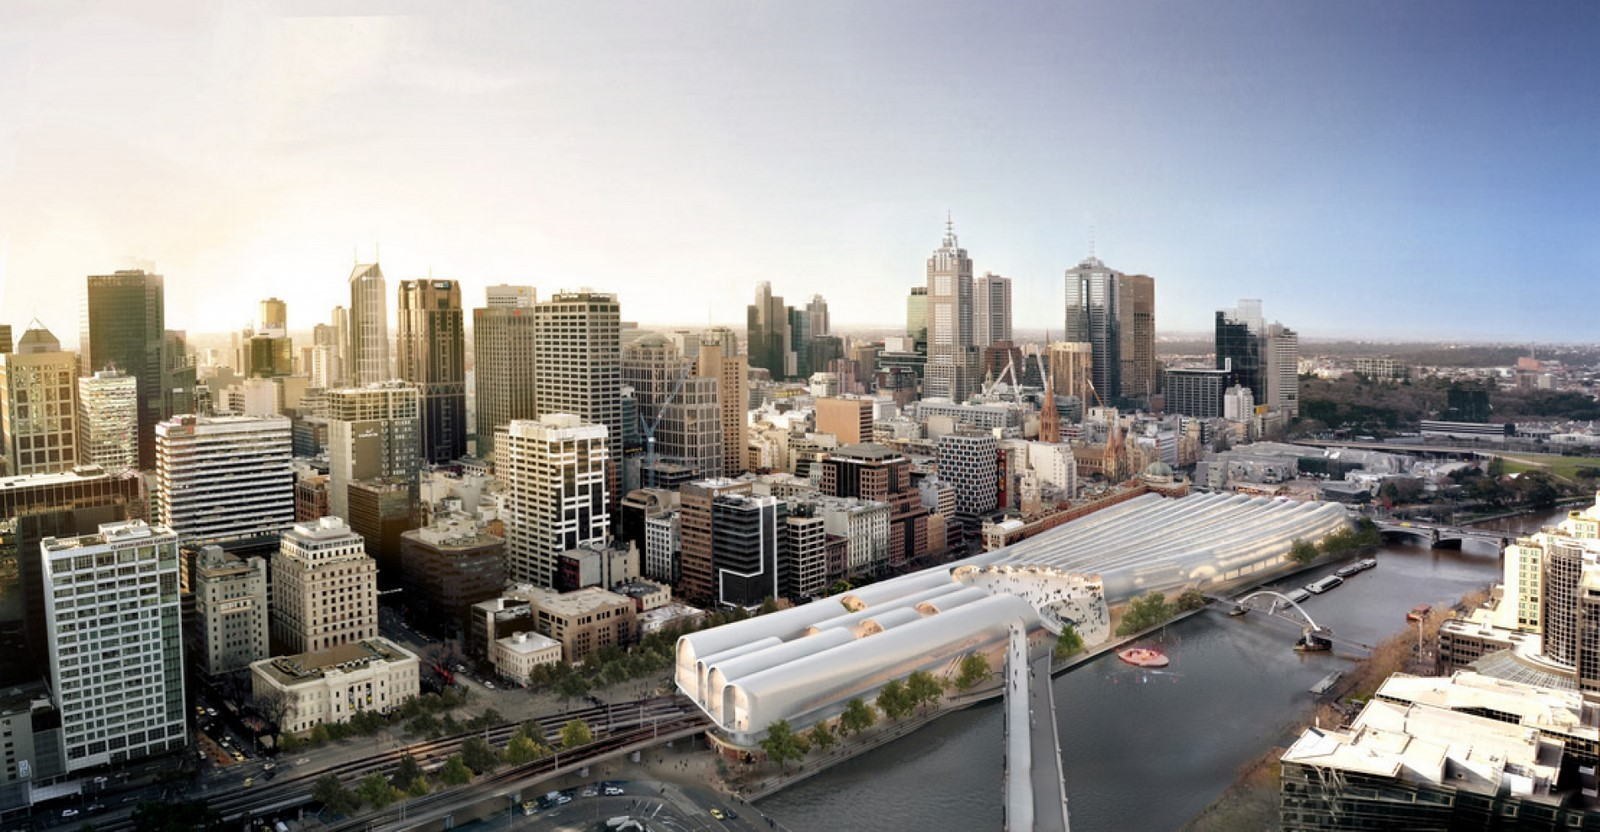 Flinders Street Station by Hassell, Herzog de Meuron, and Purcell Sheet2